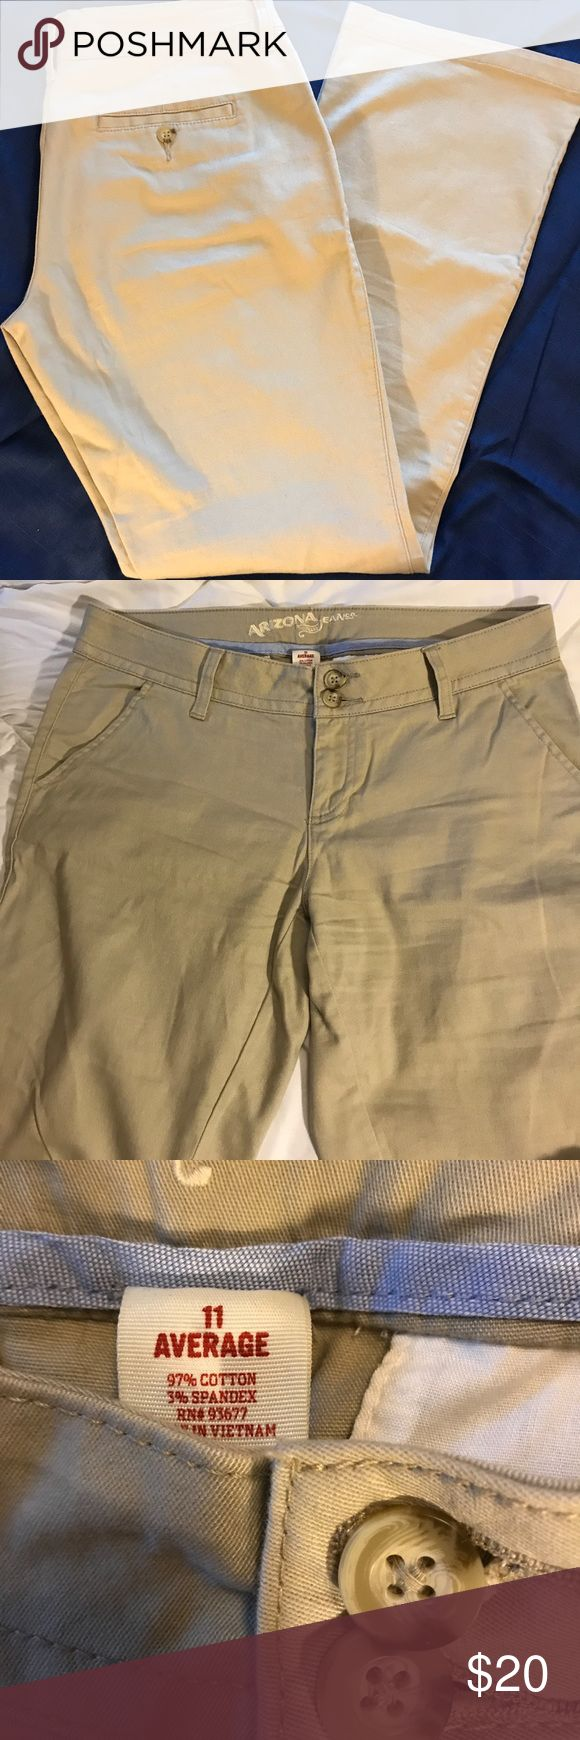 Arizona khaki pants Khaki color pants. Juniors size 11 average. Slant pockets. Only worn a couple of times because they just didn't feel like they fit right. EUC. Smoke free home. Arizona Jean Company Pants Trousers